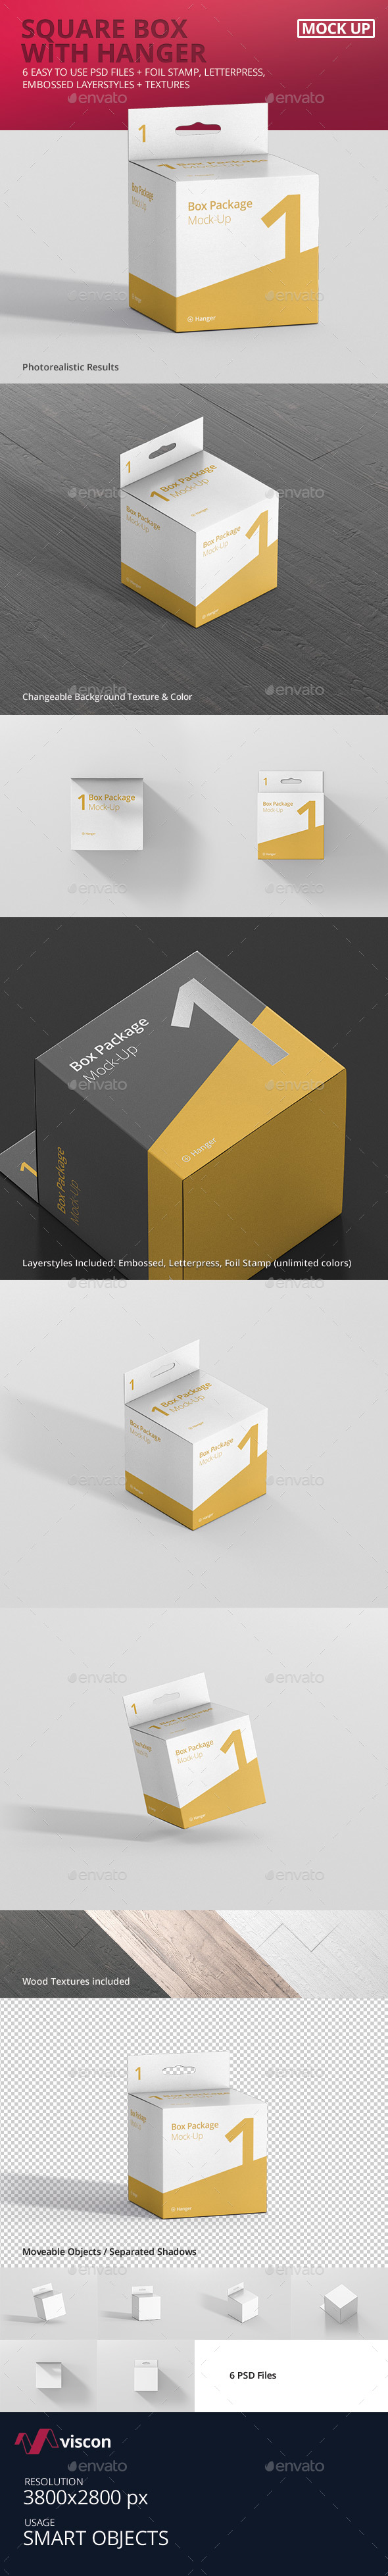 Package Box Mock-Up - Square with Hanger